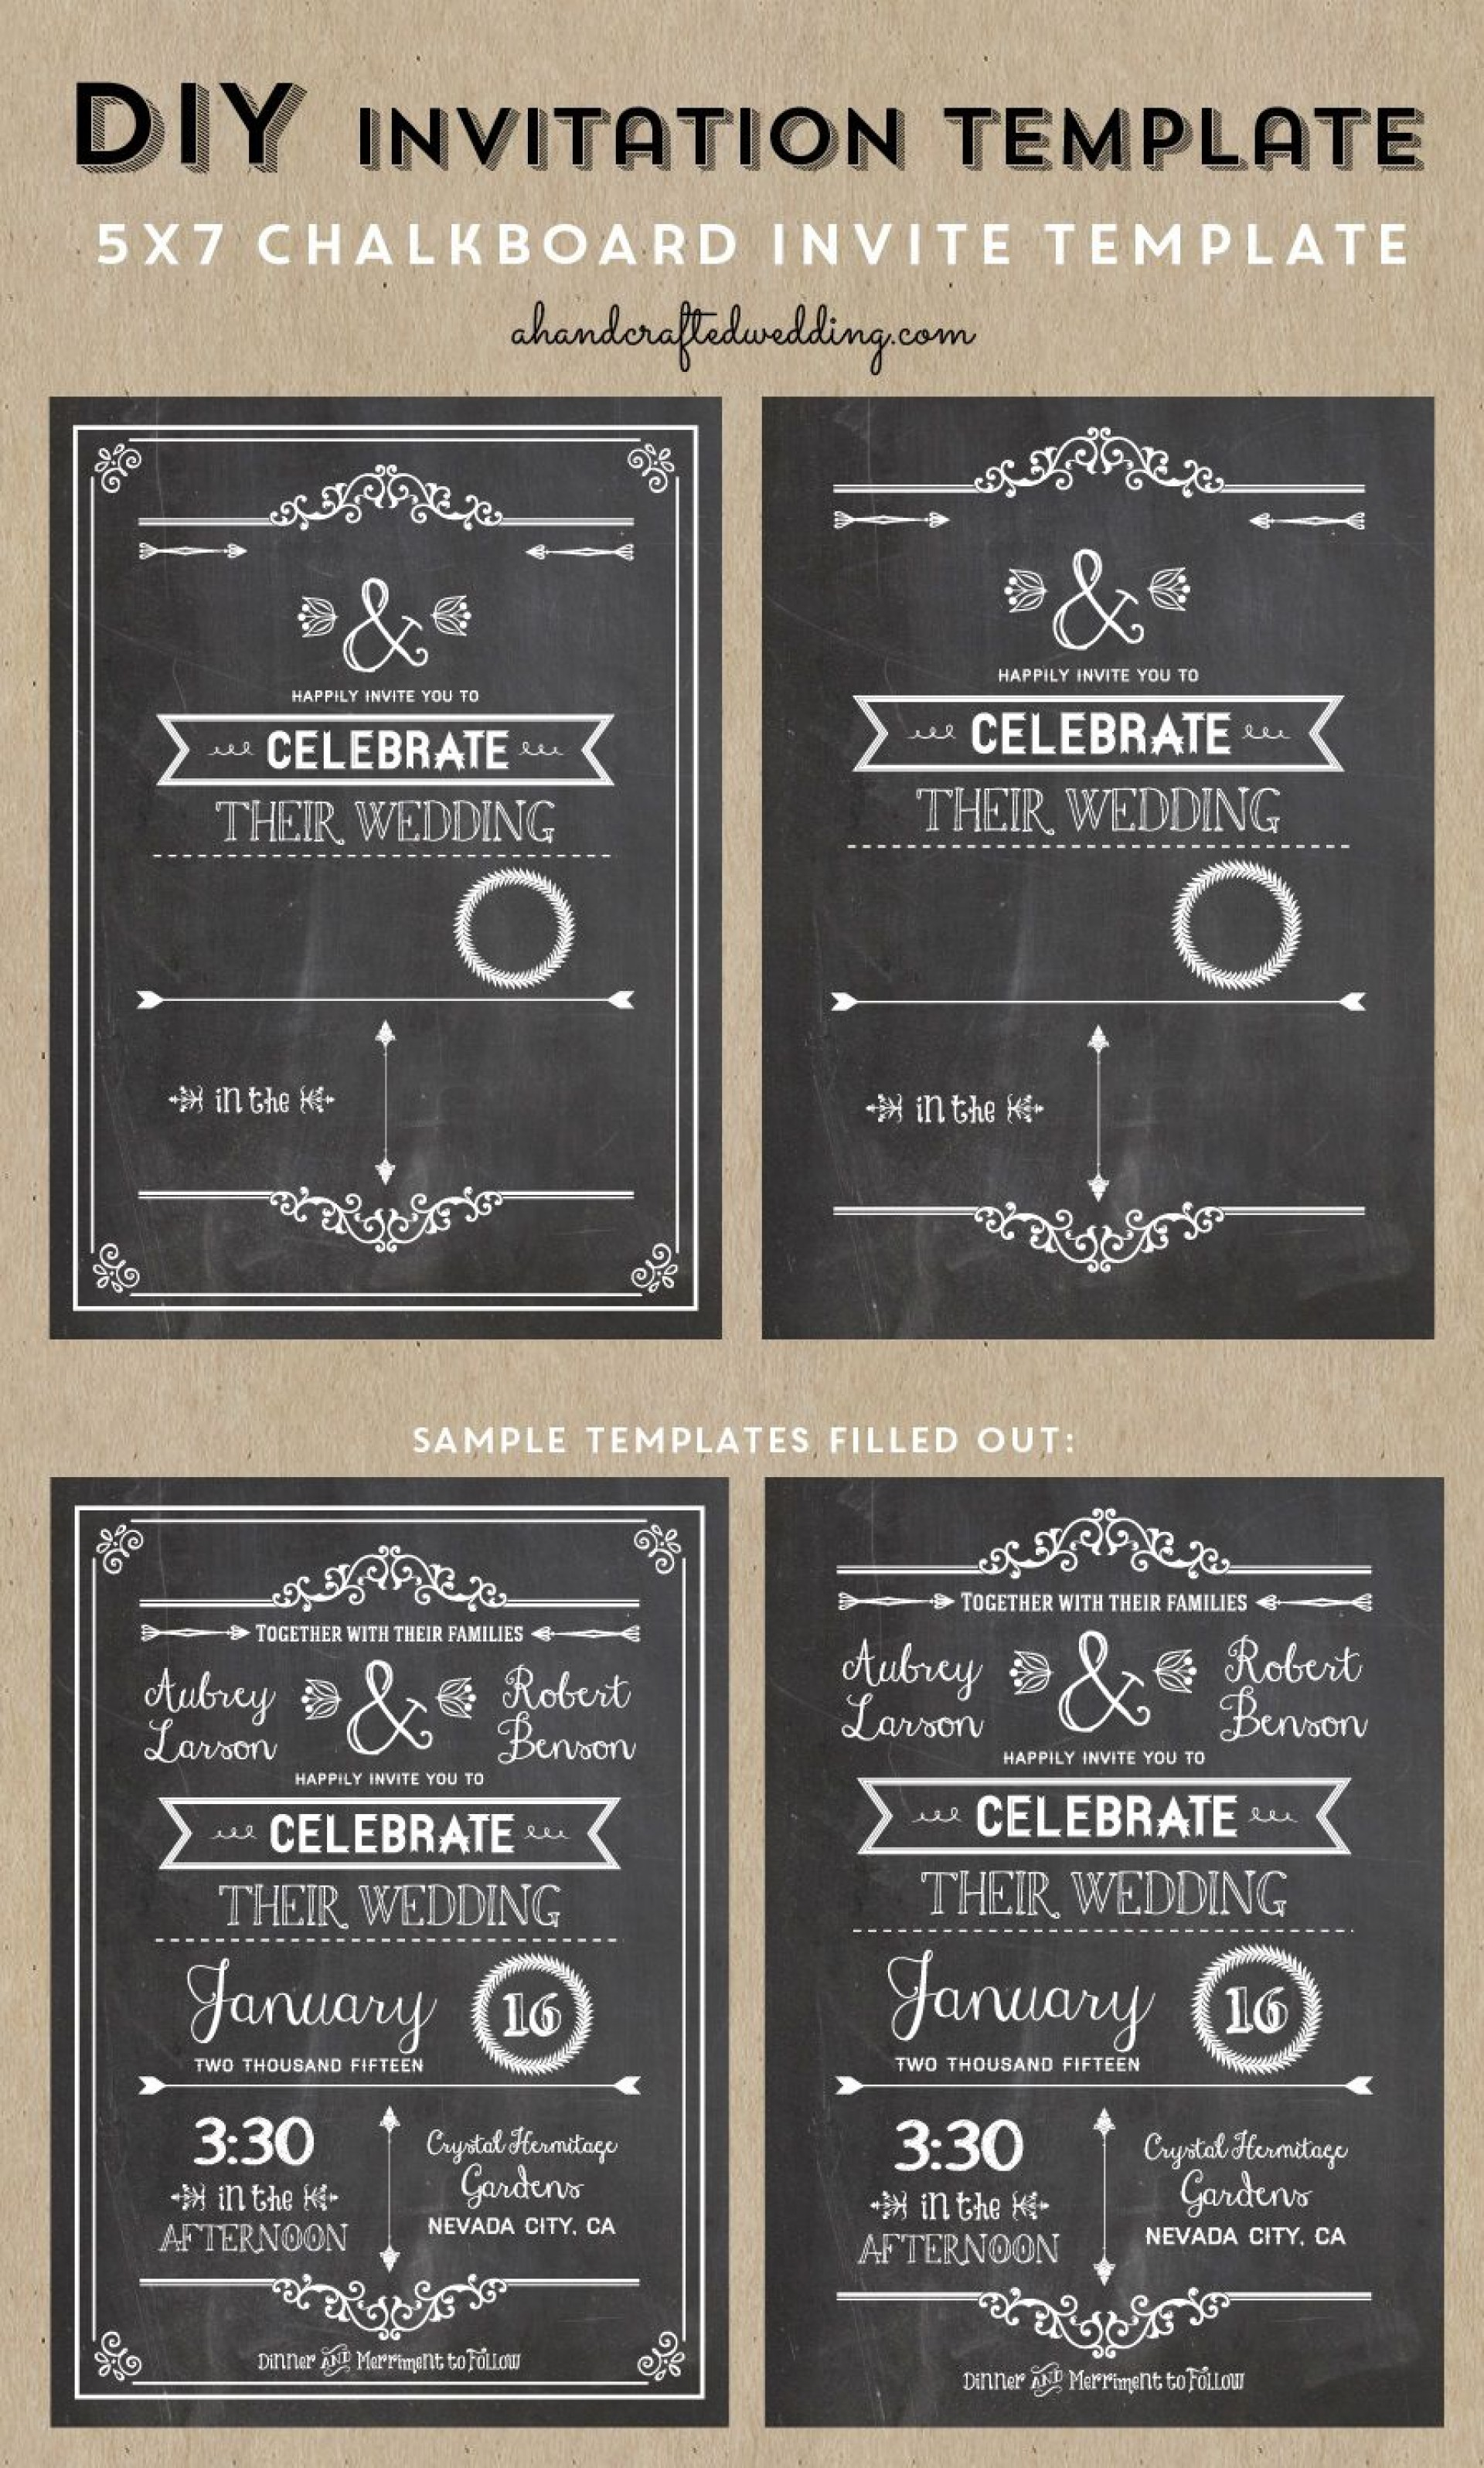 005 Wondrou Chalkboard Invitation Template Free Picture  Download Birthday1920